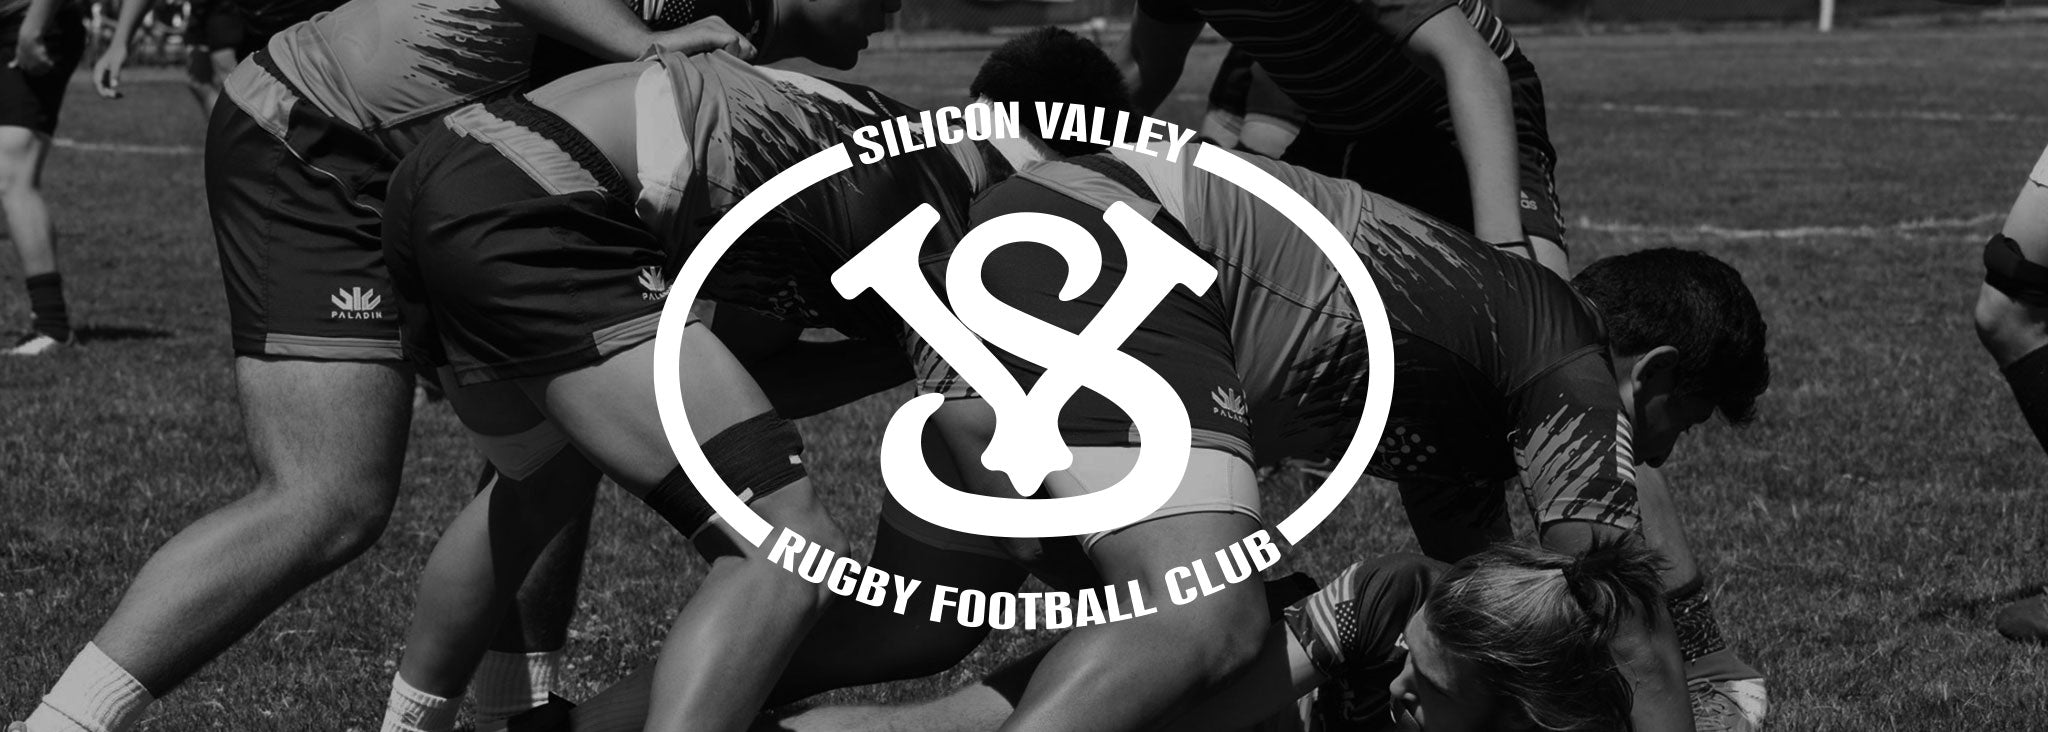 Silicon Valley RFC